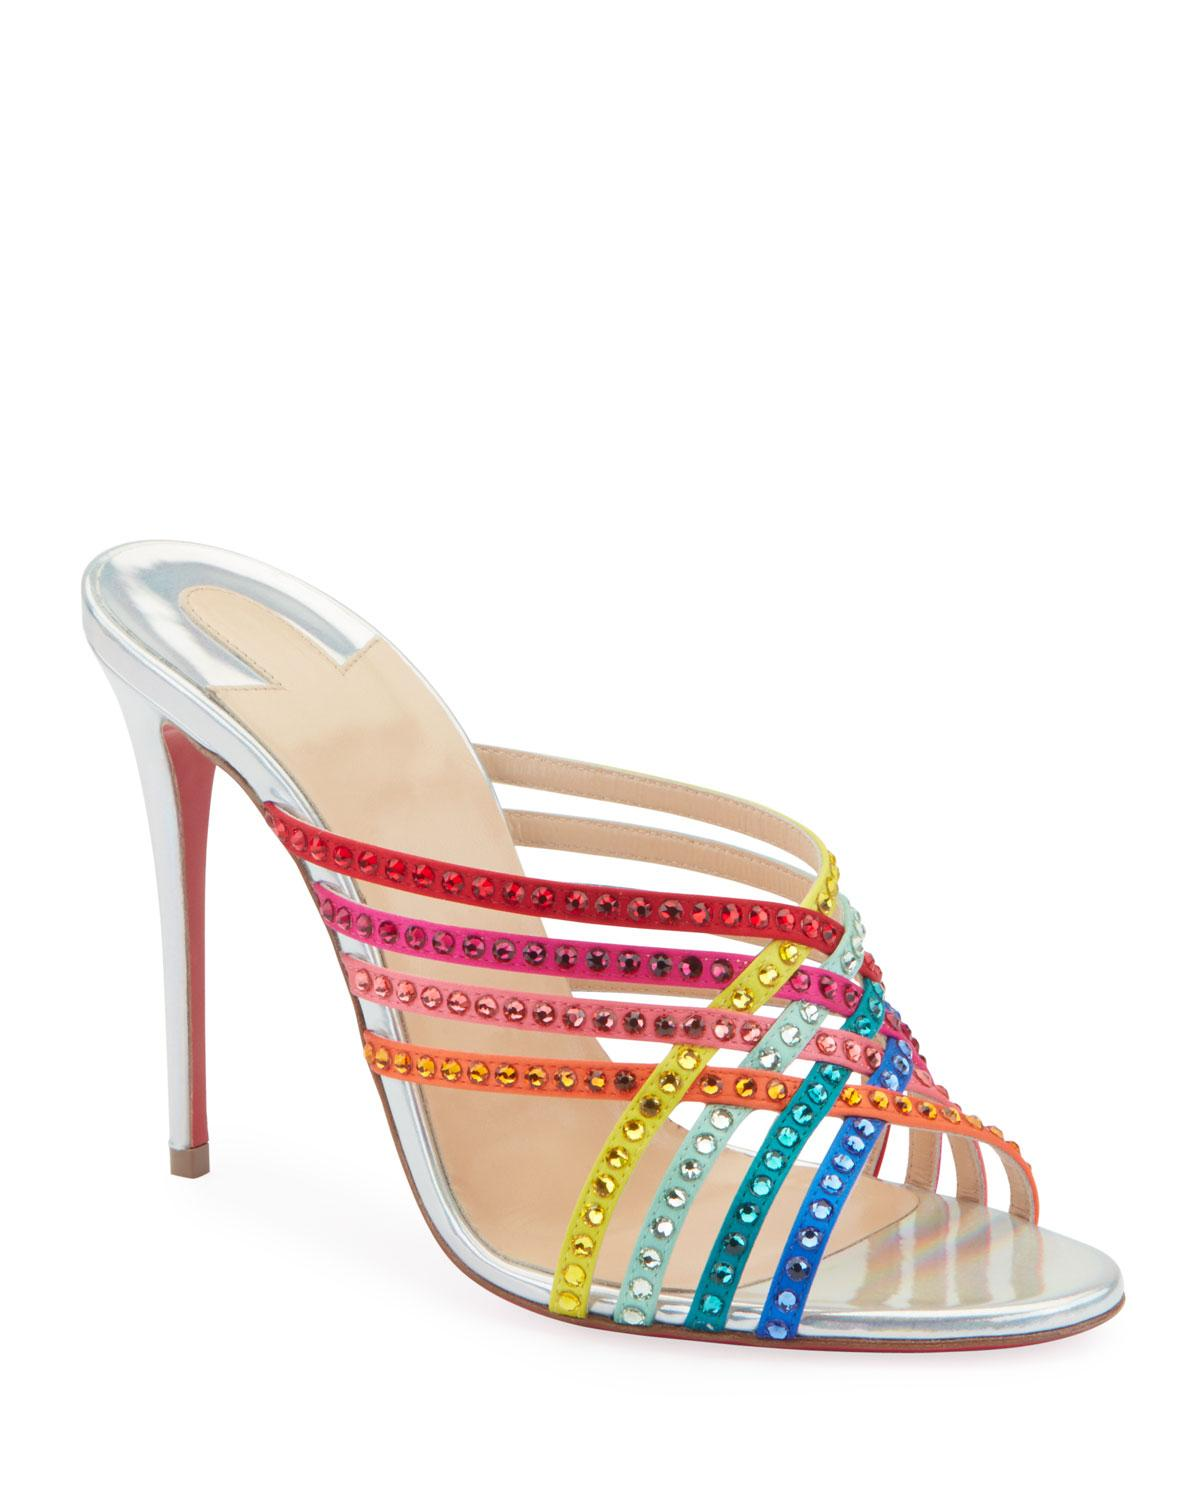 aa1711bba02 Lyst - Christian Louboutin Marthastrass 100 Red Sole Slide Sandals ...